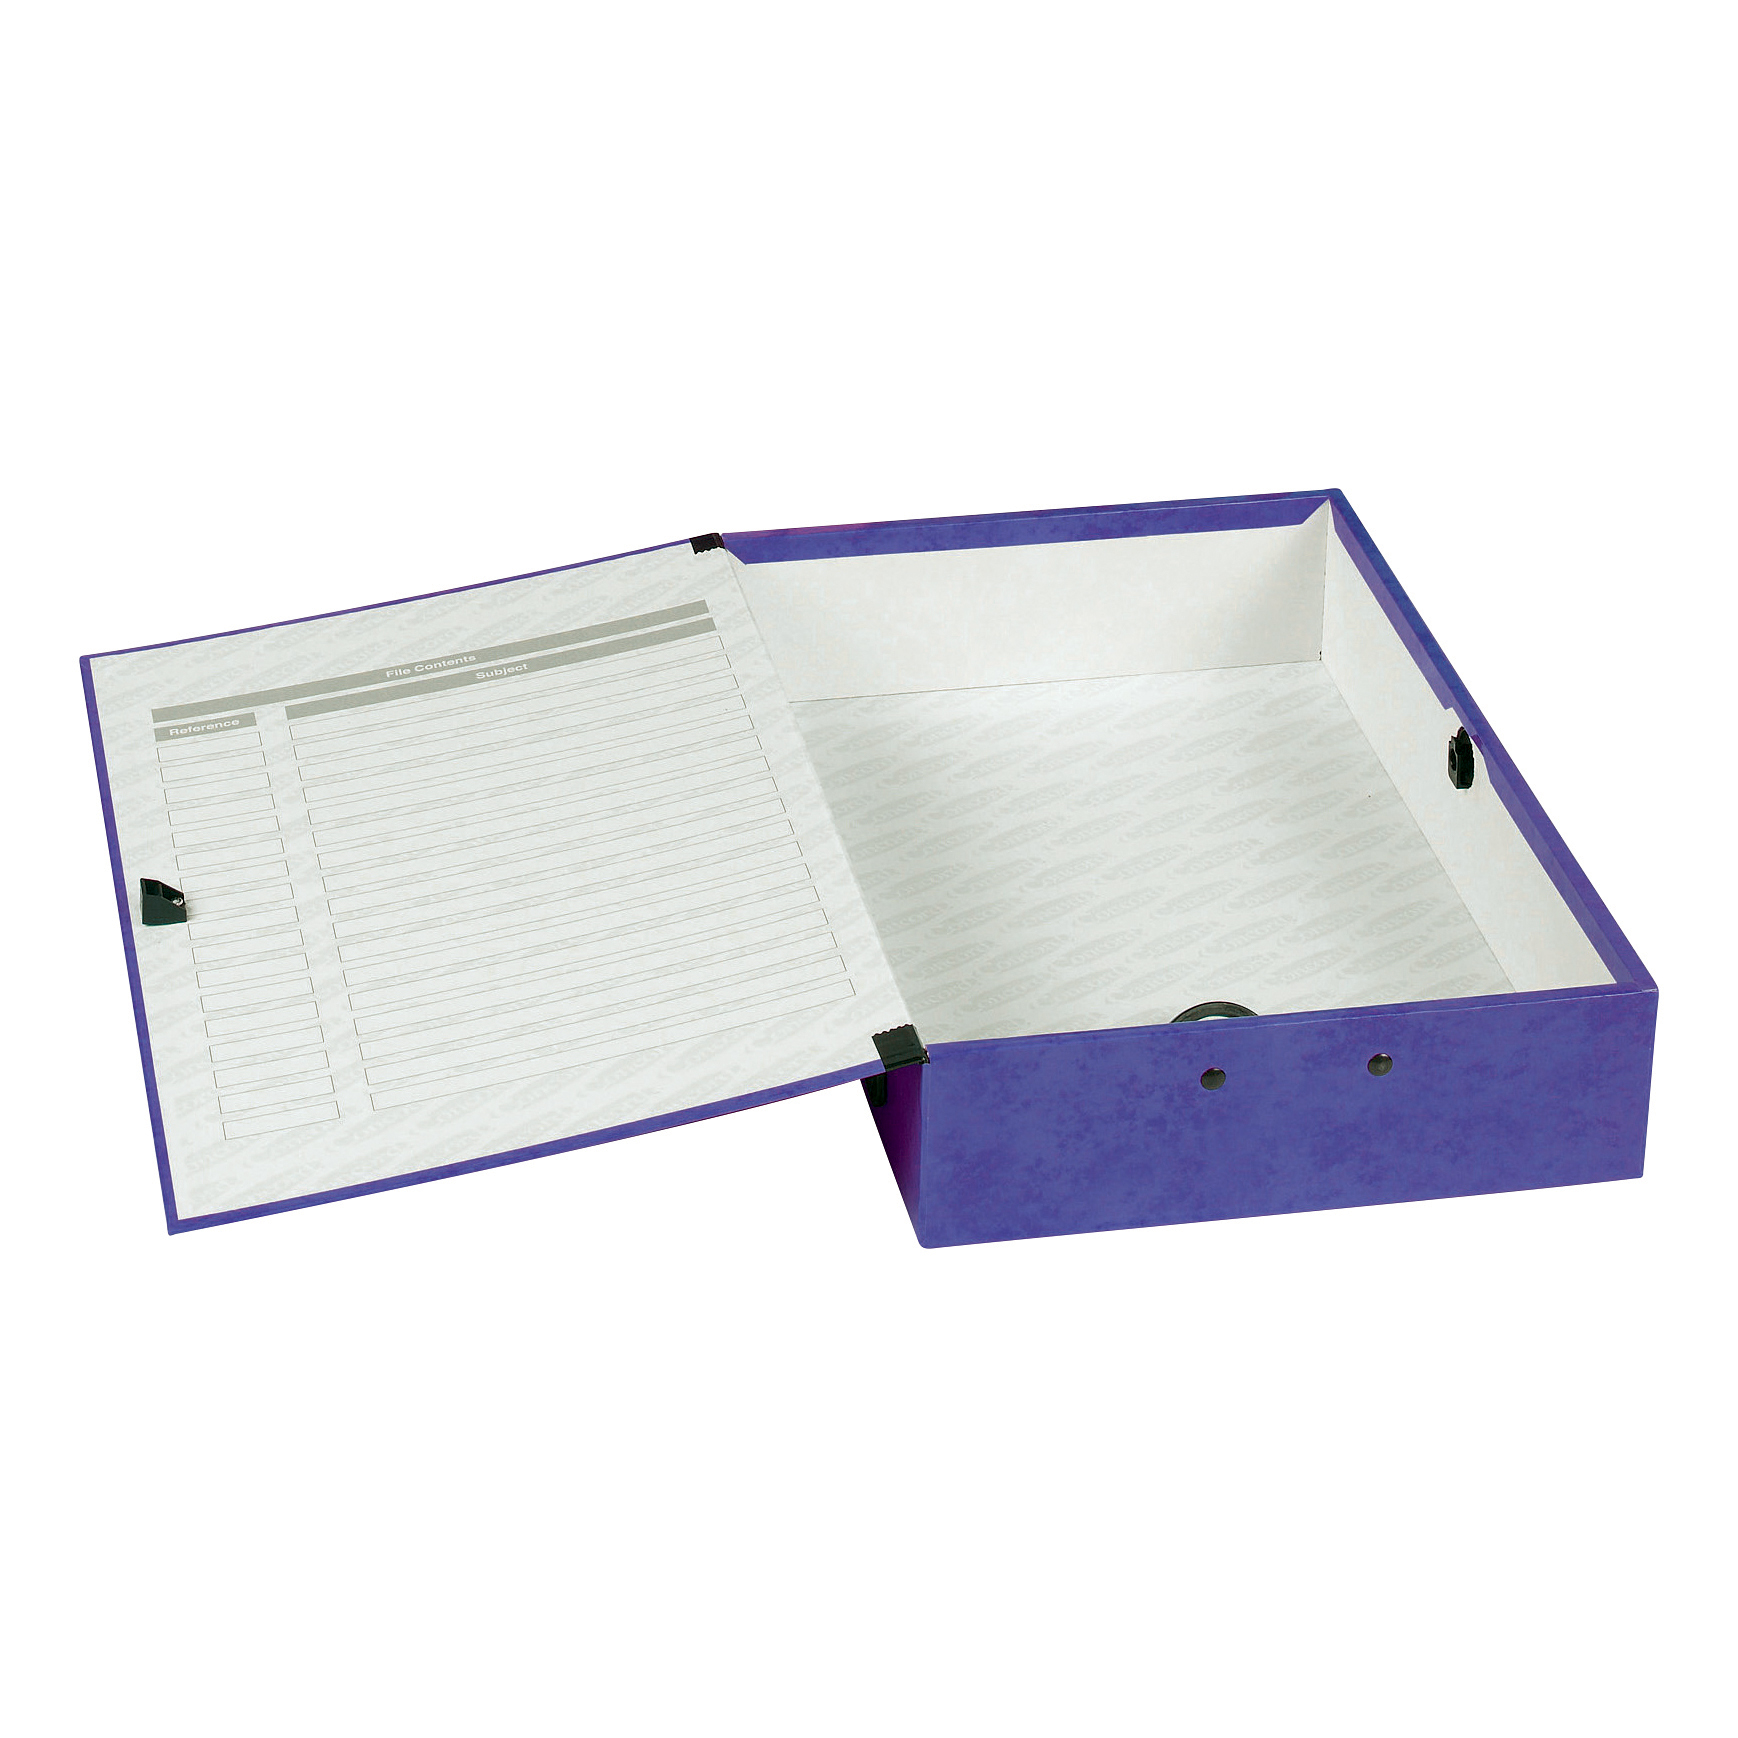 Box Files Concord Contrast Box File Laminated 75mm Spine Foolscap Purple Ref 13484 Pack 5